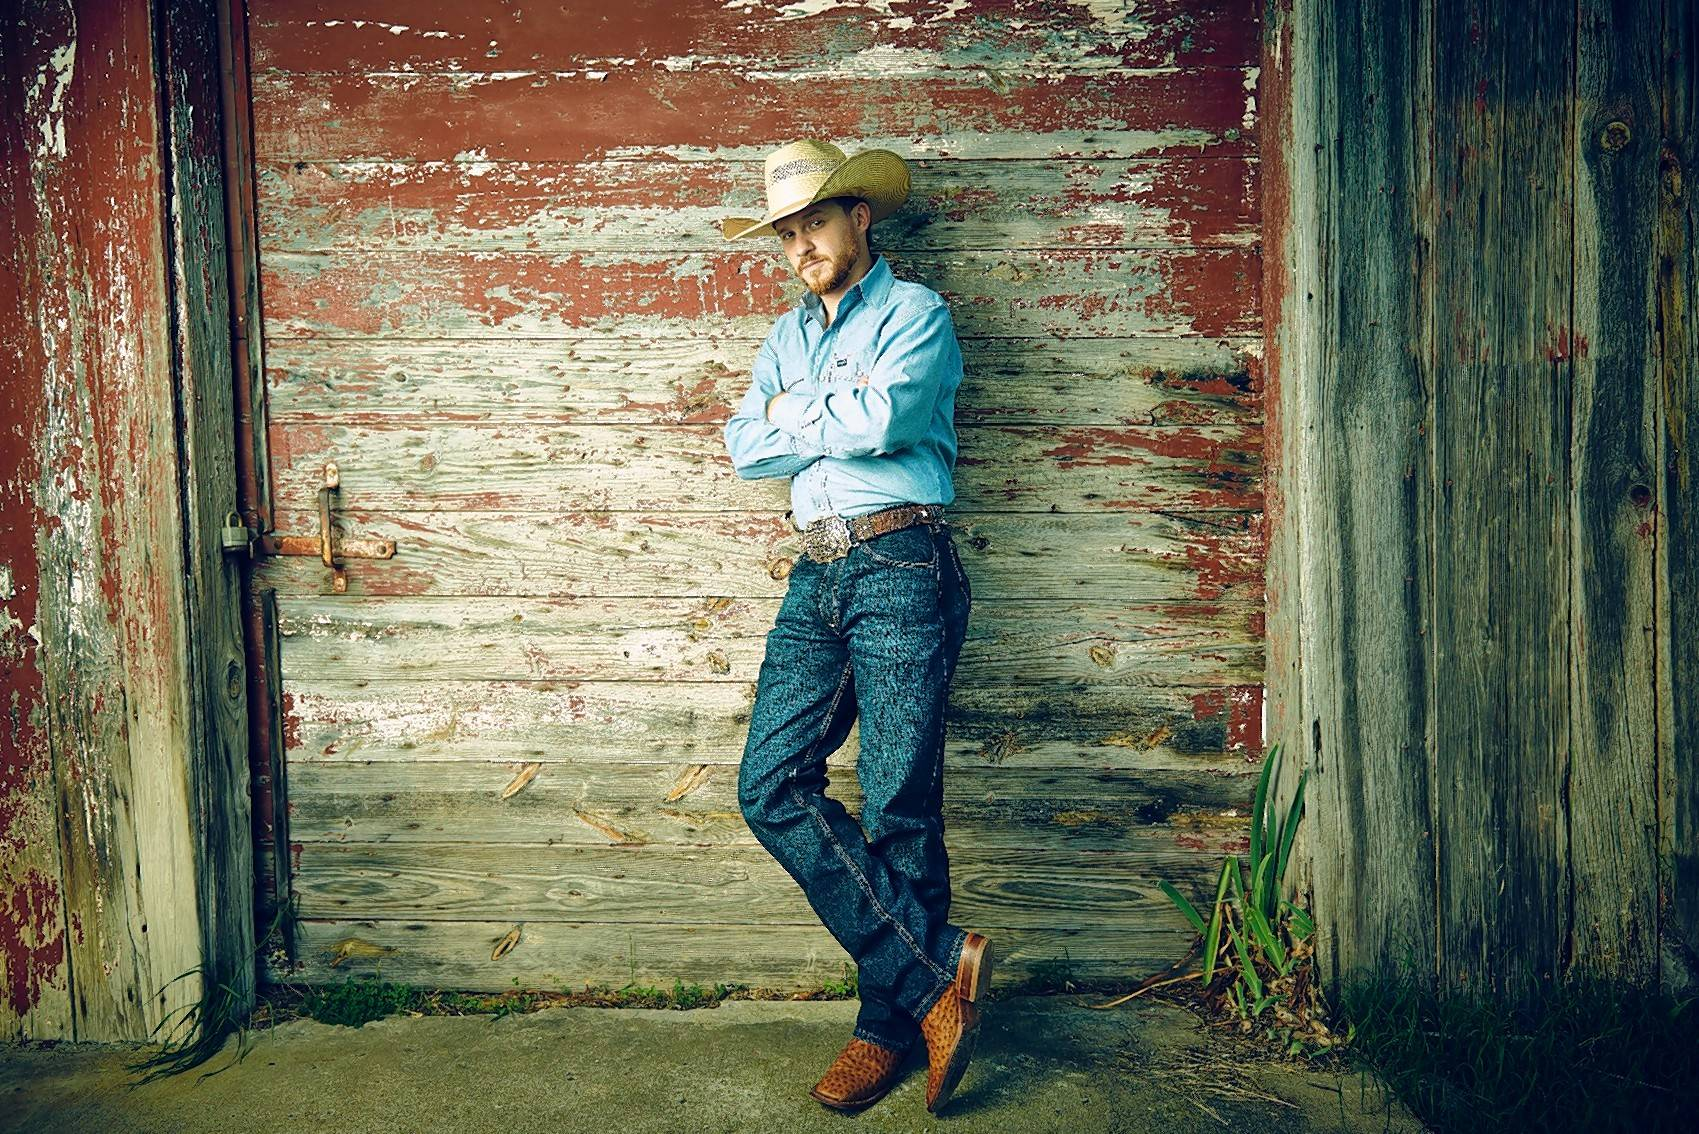 Country artist Cody Johnson headlines Saturday, Jan. 13, at Joe's Live in Rosemont.